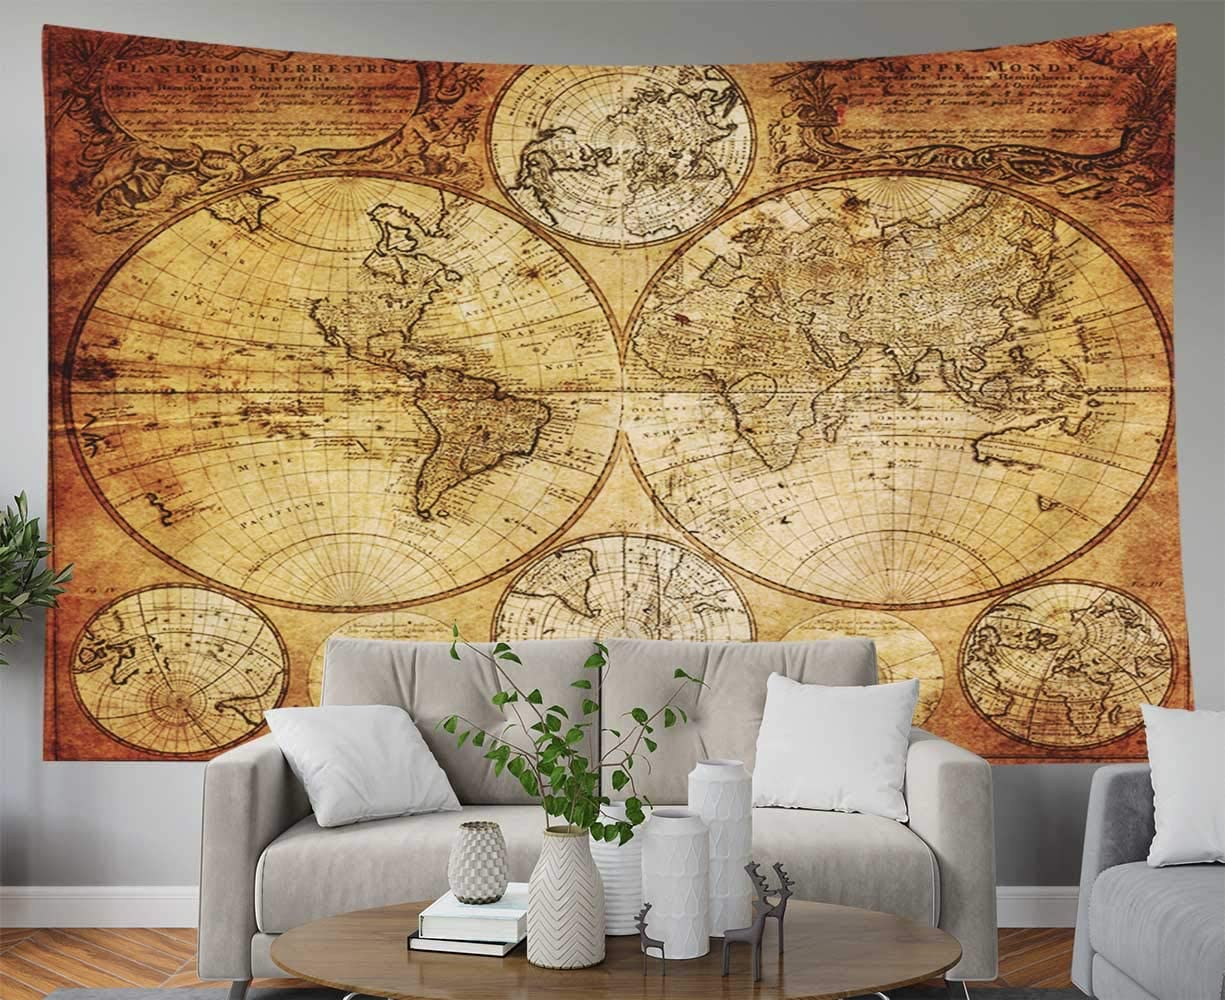 Map Tapestry World Map Tapestry Map Tapestry Wall Hanging Map Outline Tapestry Wall Map Tapestry Vintage Map Tapestry Christmas Dorm Decor 50X60 Inches,Black White Capsceoll Map Tapestry Black